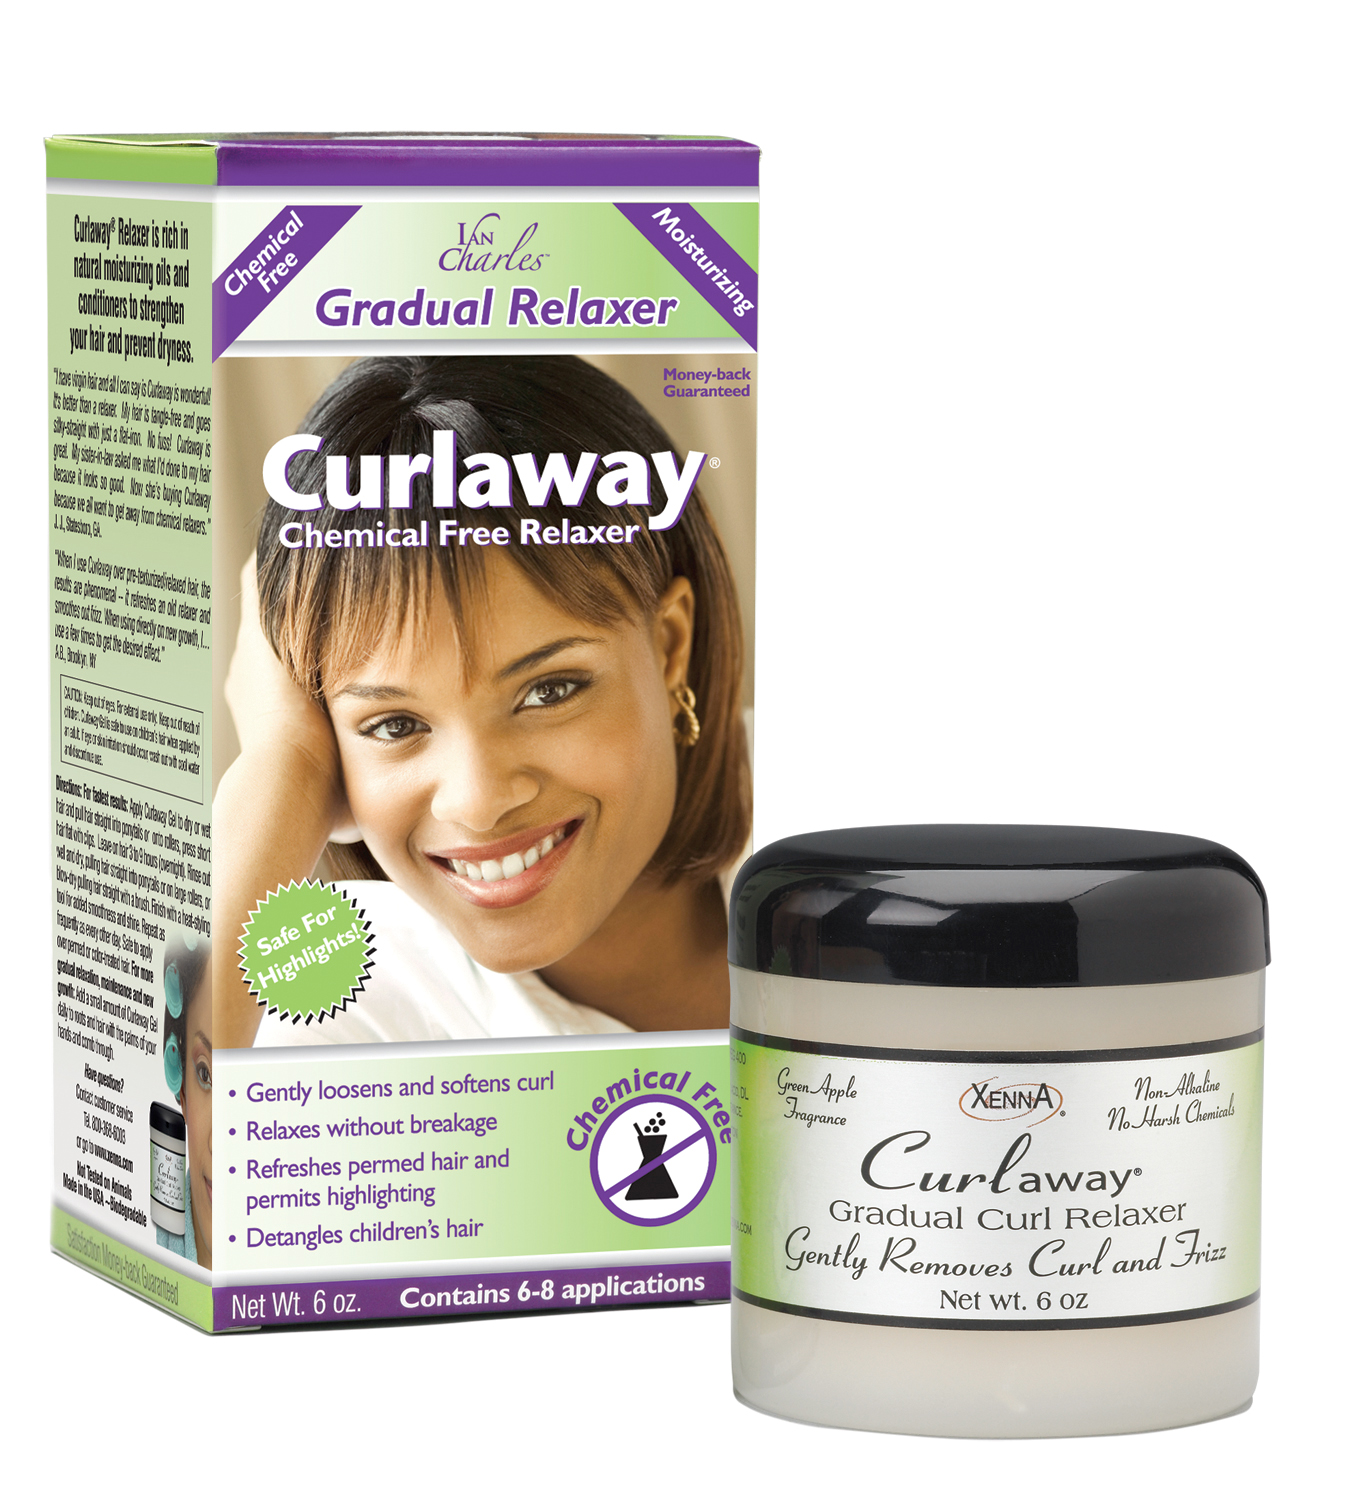 Curlaway Curl Relaxing Gelchemical Free Patented Rela Gradually Without Breakage